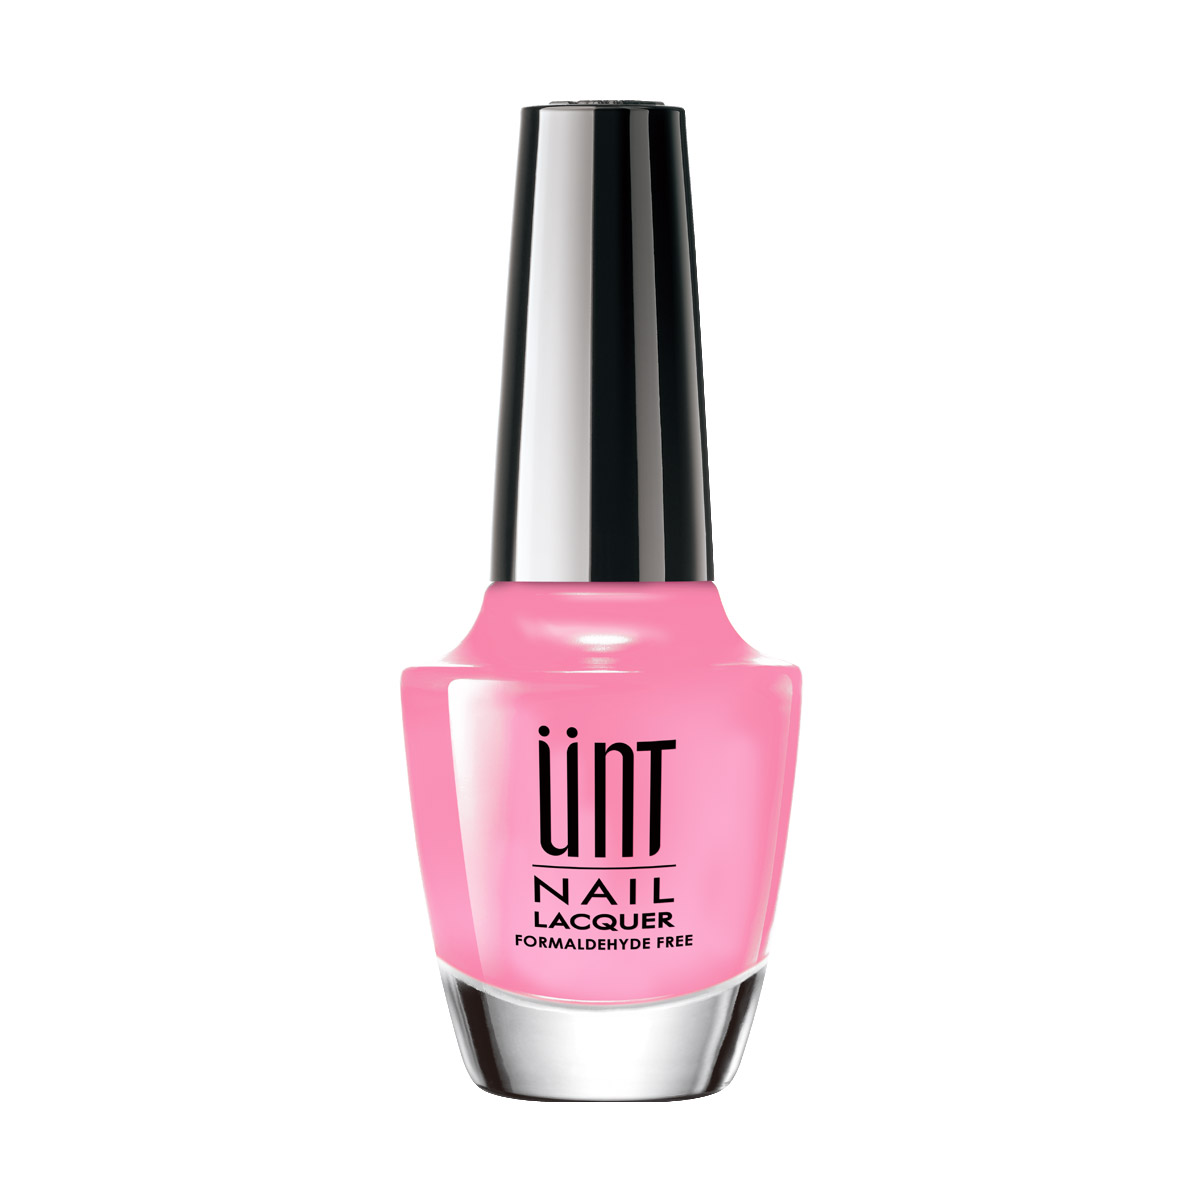 NAIL LACQUER - THE KATE PARTY